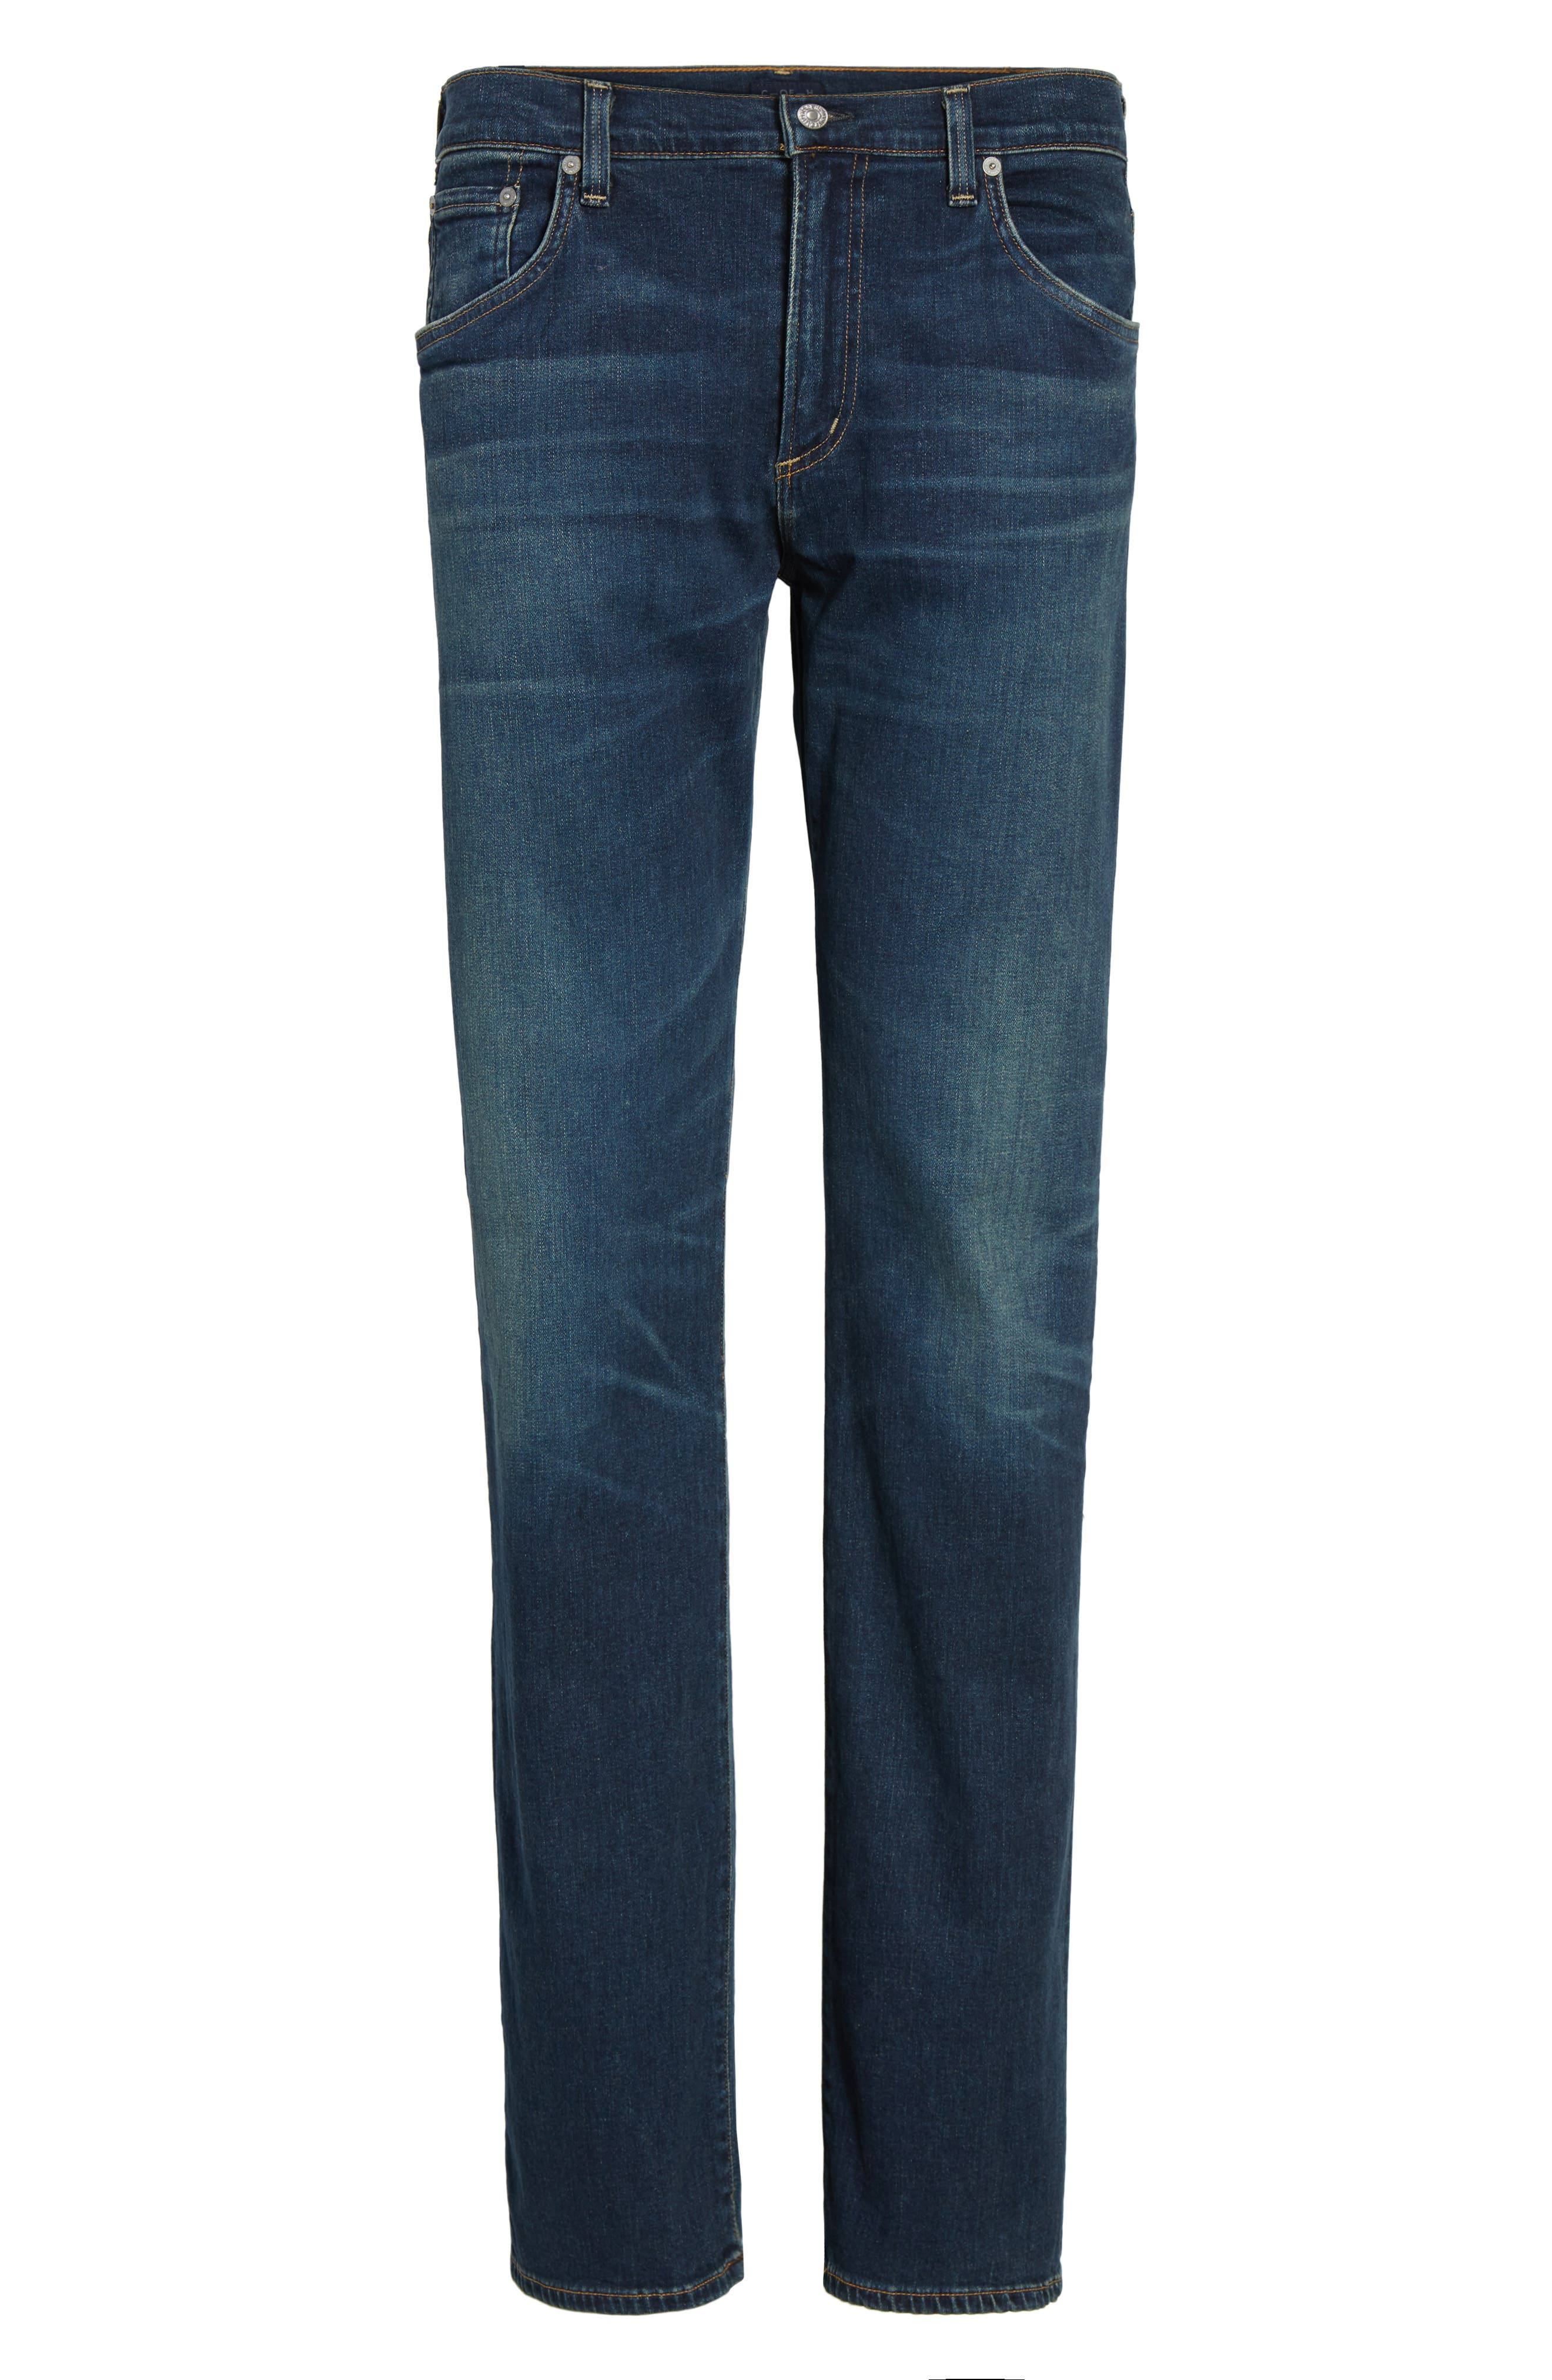 Sid Straight Leg Jeans,                             Alternate thumbnail 6, color,                             402